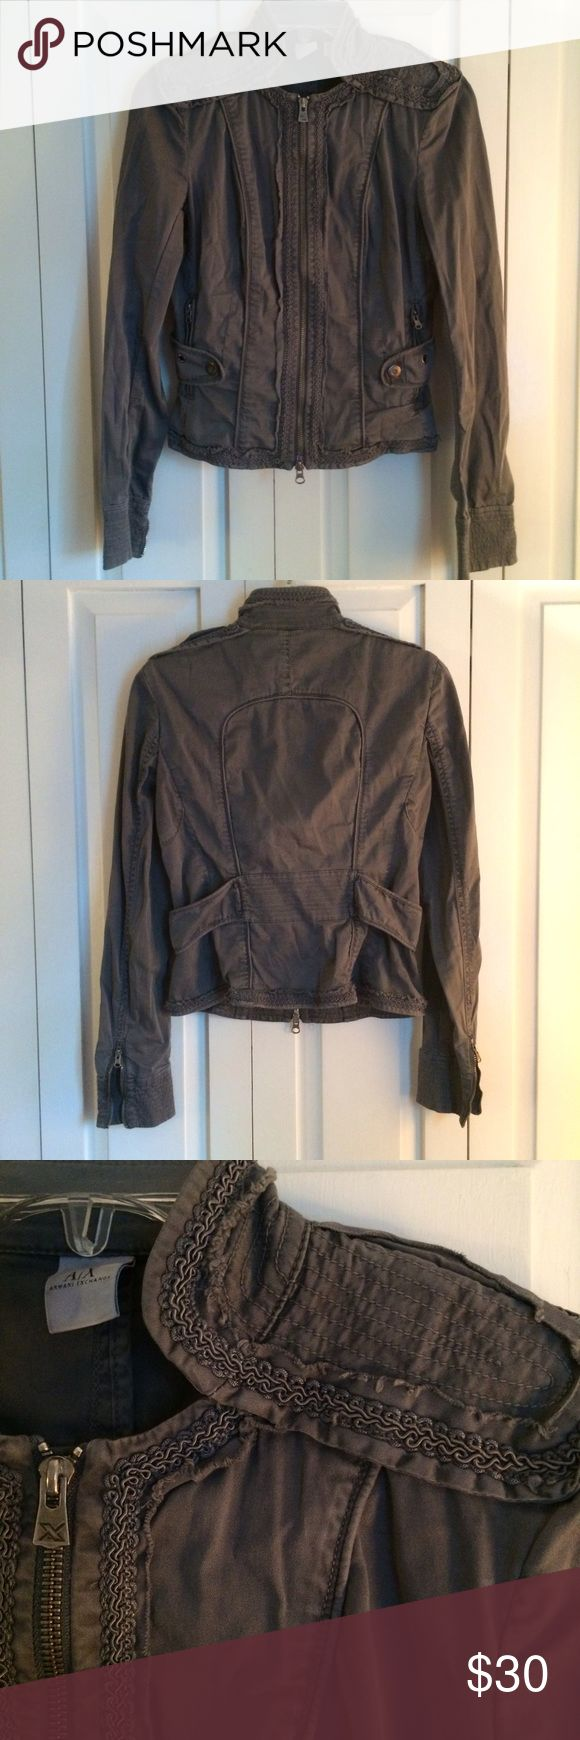 A|X Armani Exchange Military Jacket Great condition! Slate gray military-style jacket with feminine details. Does have some stretch! No trades please. Armani Exchange Jackets & Coats